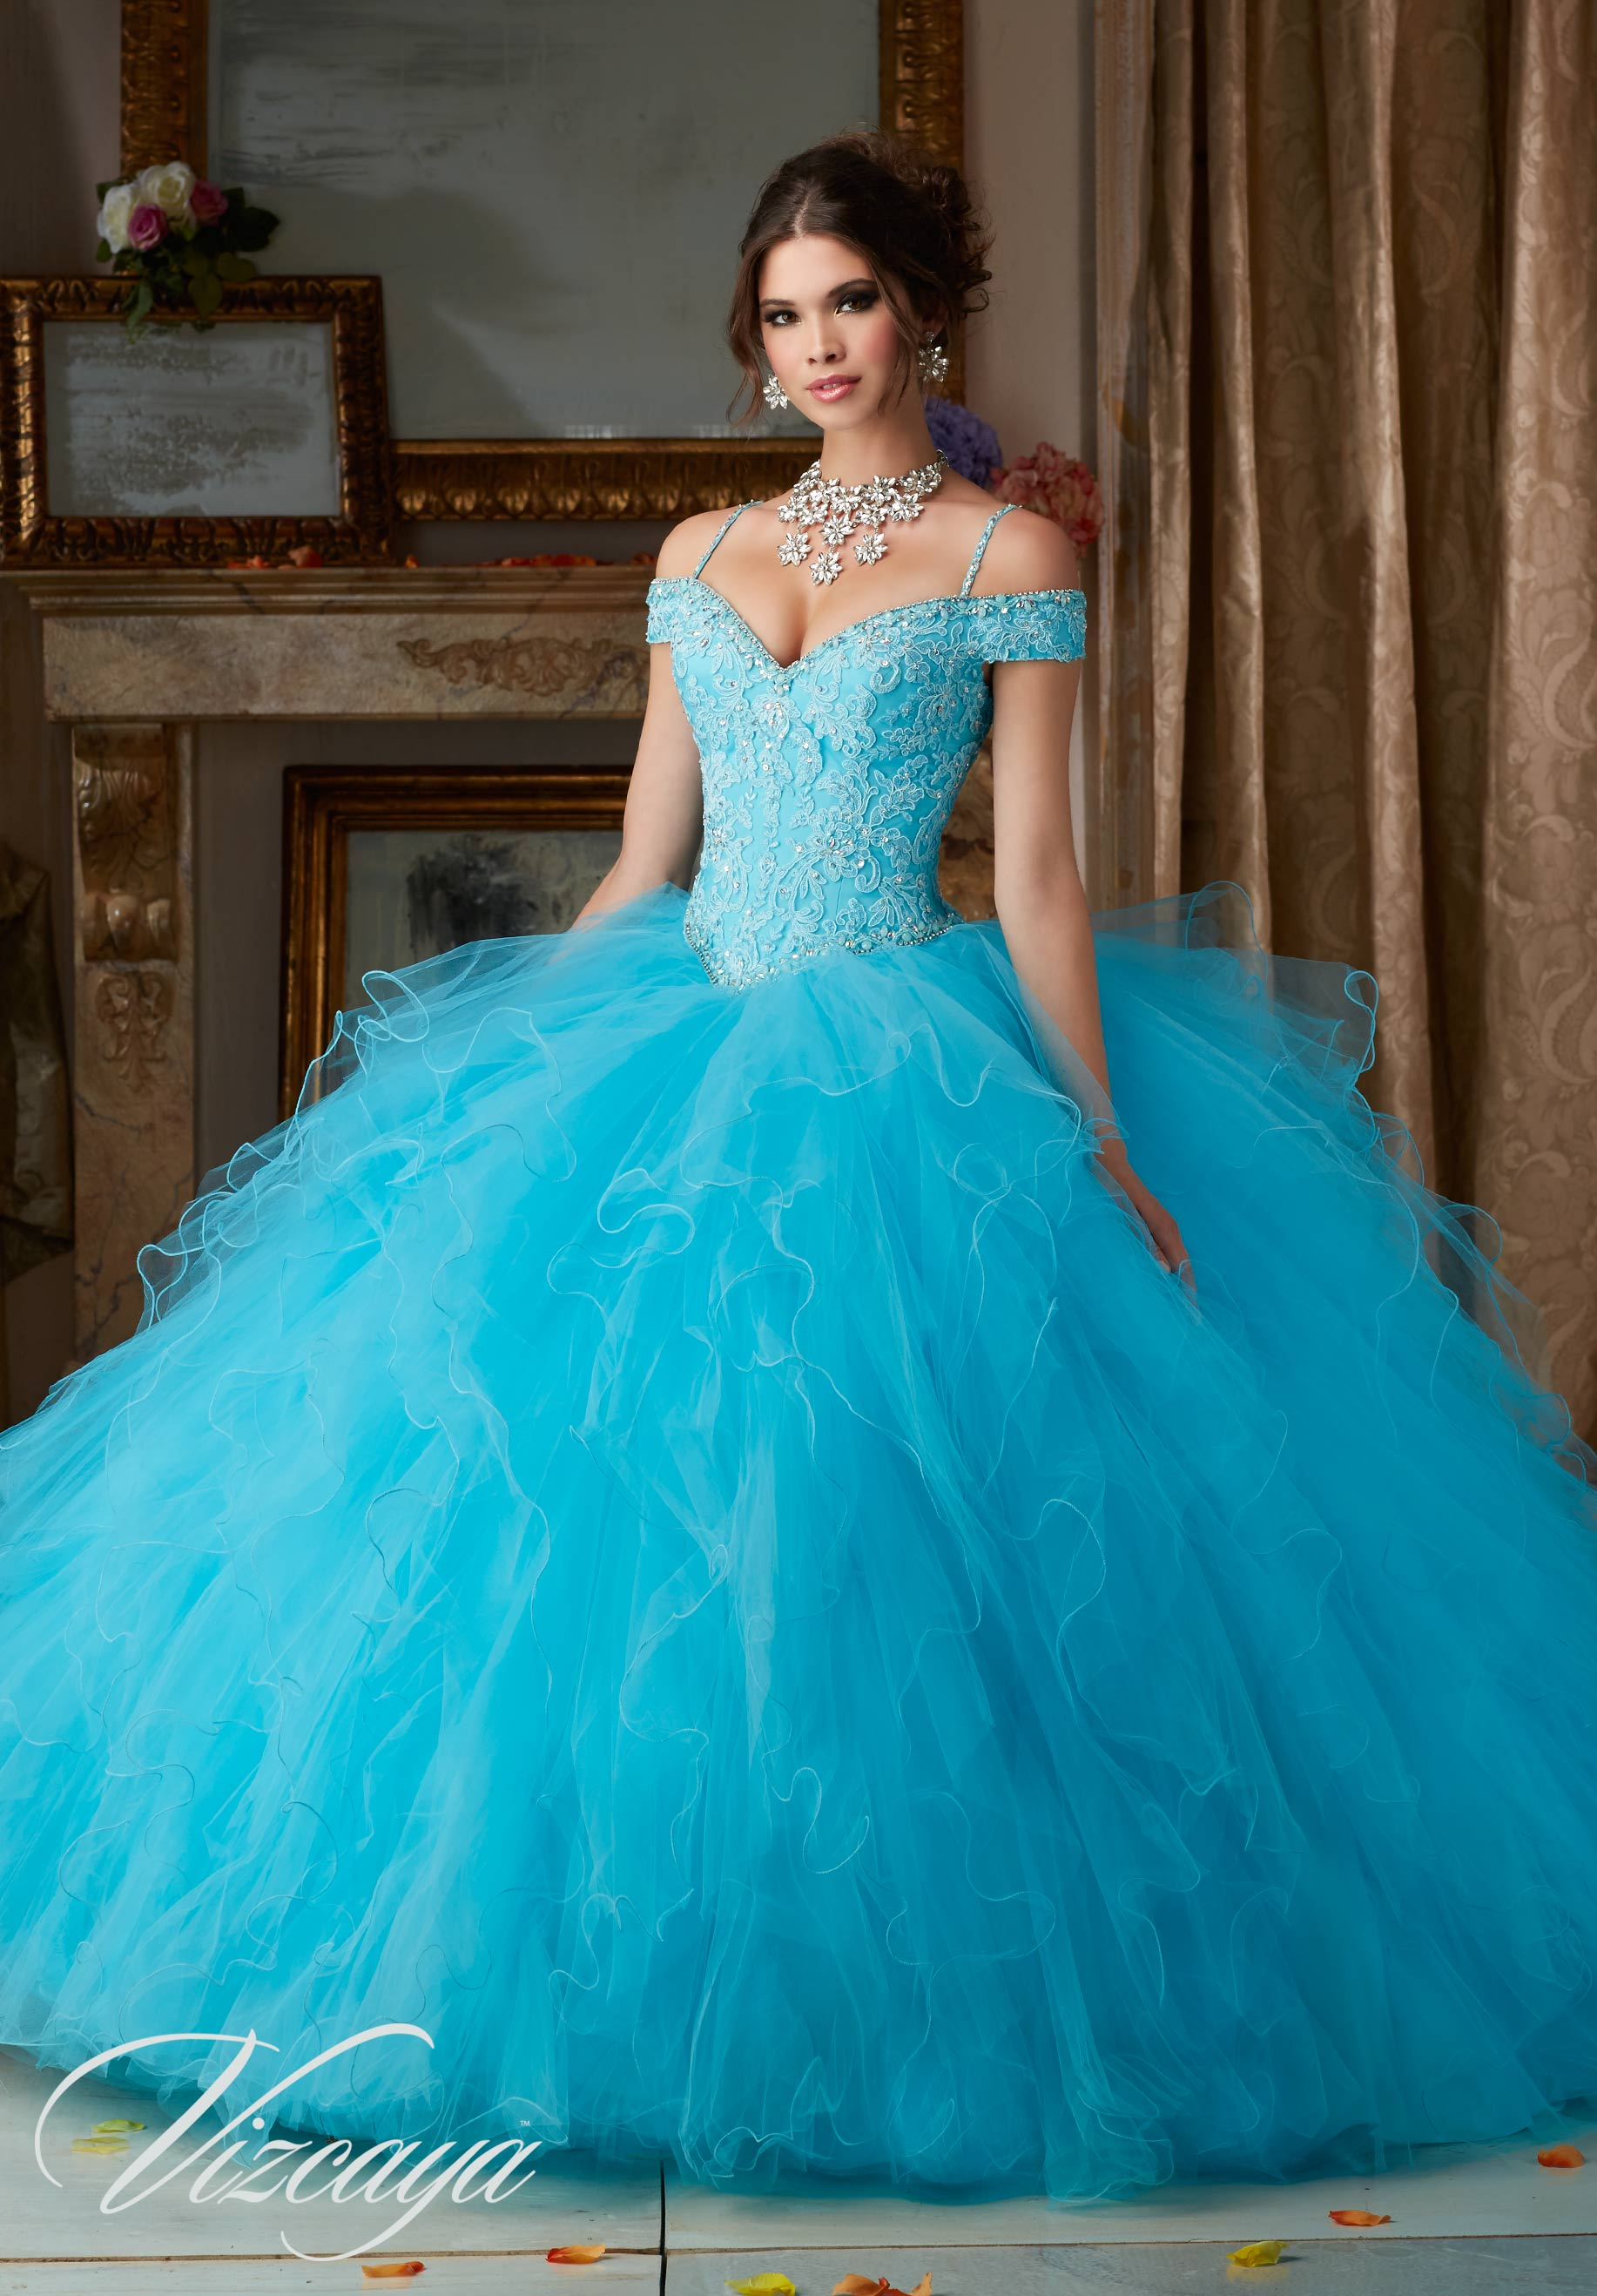 89102 Quinceanera Dresses, Vizcaya Collection - Dresses by Russo Boston